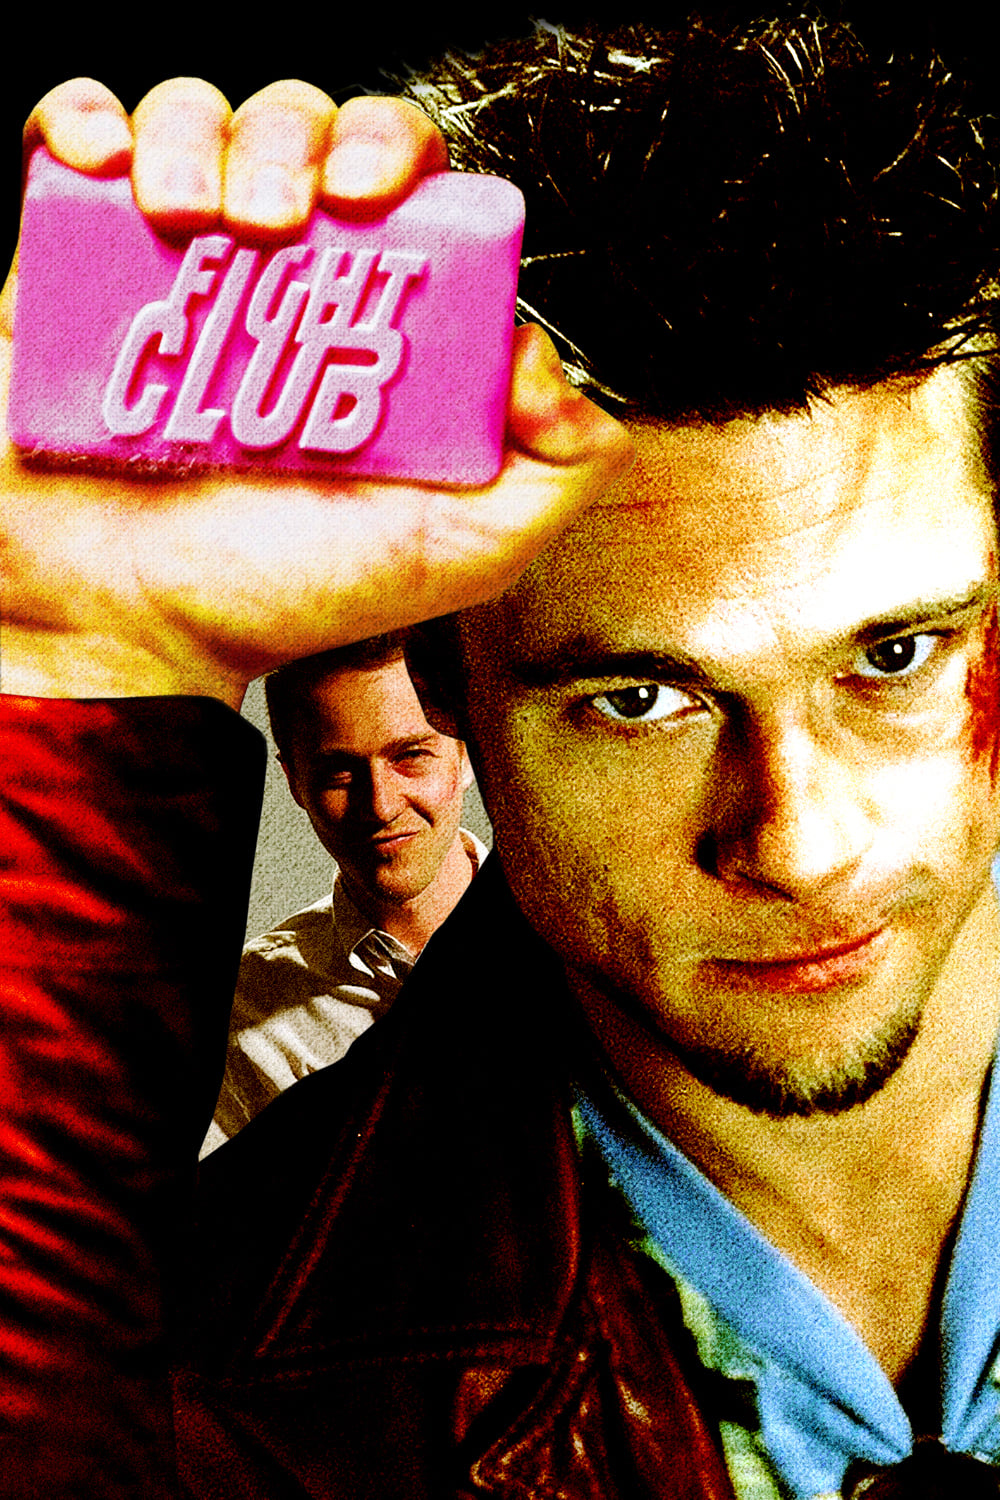 the dark overtone of the film fight club directed by david fincher in 1999 Drama directed by david fincher  (1999) selma blair at an event for fight  club (1999) tom arnold at an event for fight club (1999) brad pitt in fight club ( 1999.